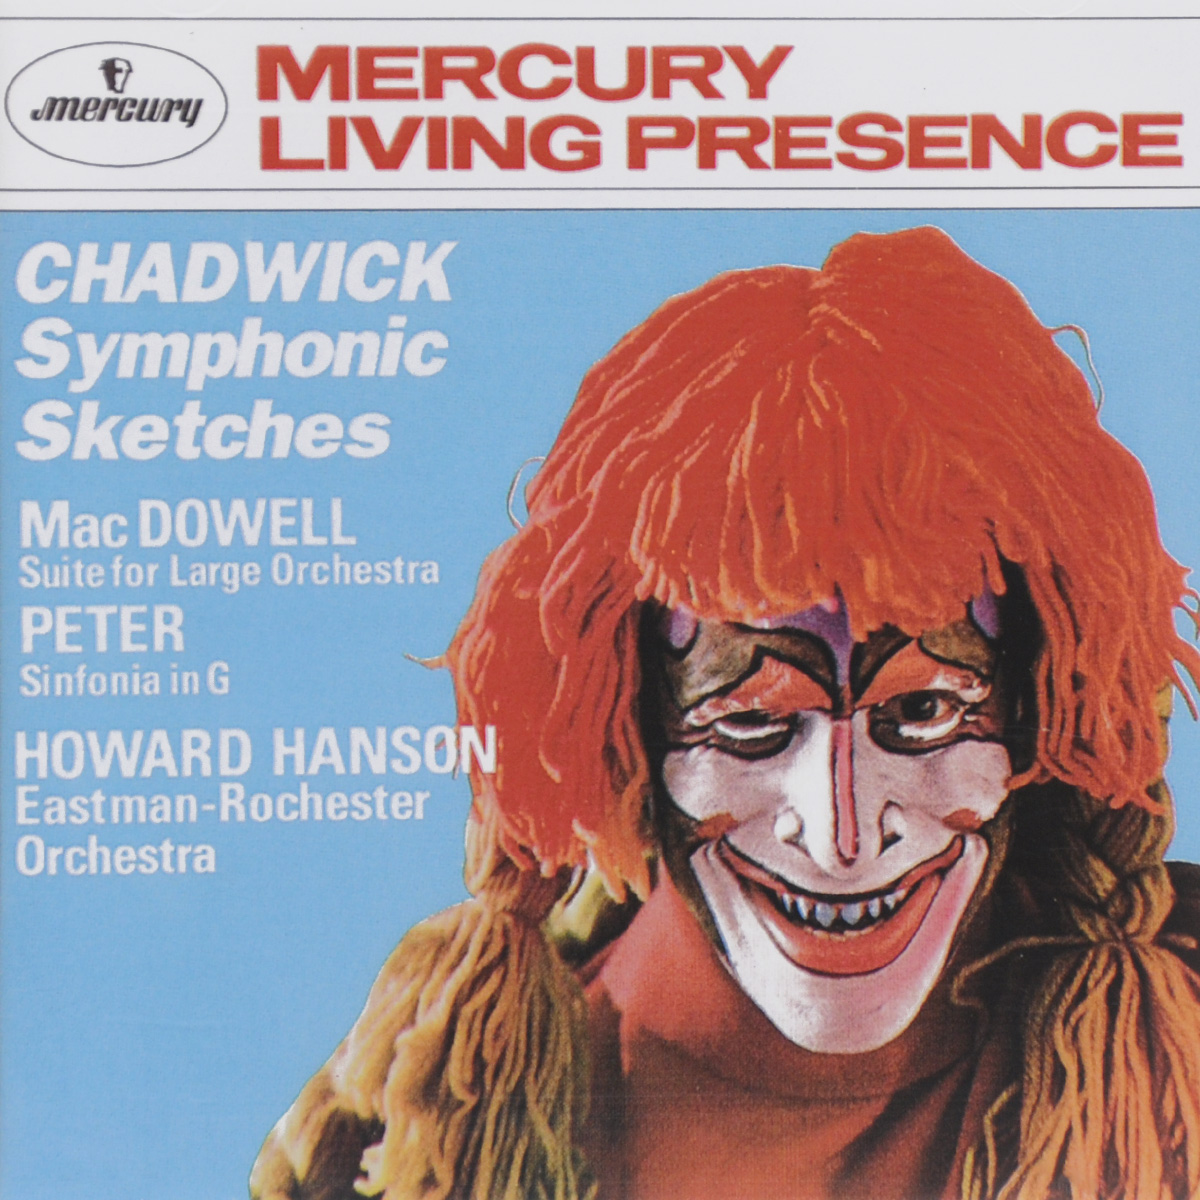 Ховард Хэнсон,Eastman-Rochester Orchestra Howard Hanson. Chadwick. Symphonic Sketches / MacDowell. Suite For Large Orchestra / Peter. Sinfonia In C kip hanson machining for dummies